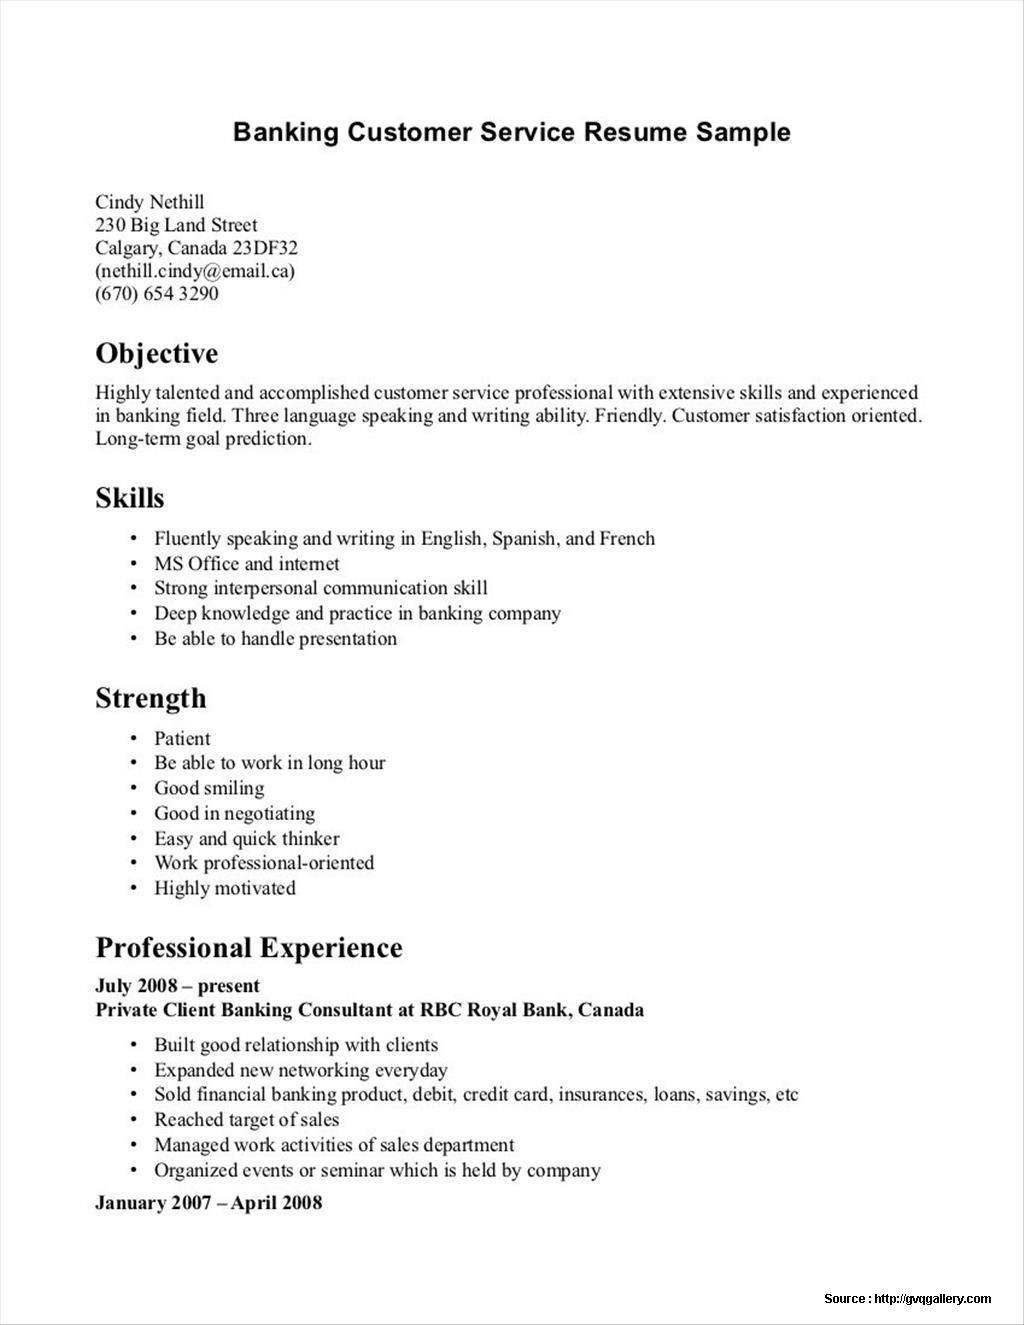 Best Resume Writing Services Canada Resume Resume Examples K9rgnlmyxb Customer Service Resume Customer Service Resume Examples Job Resume Samples